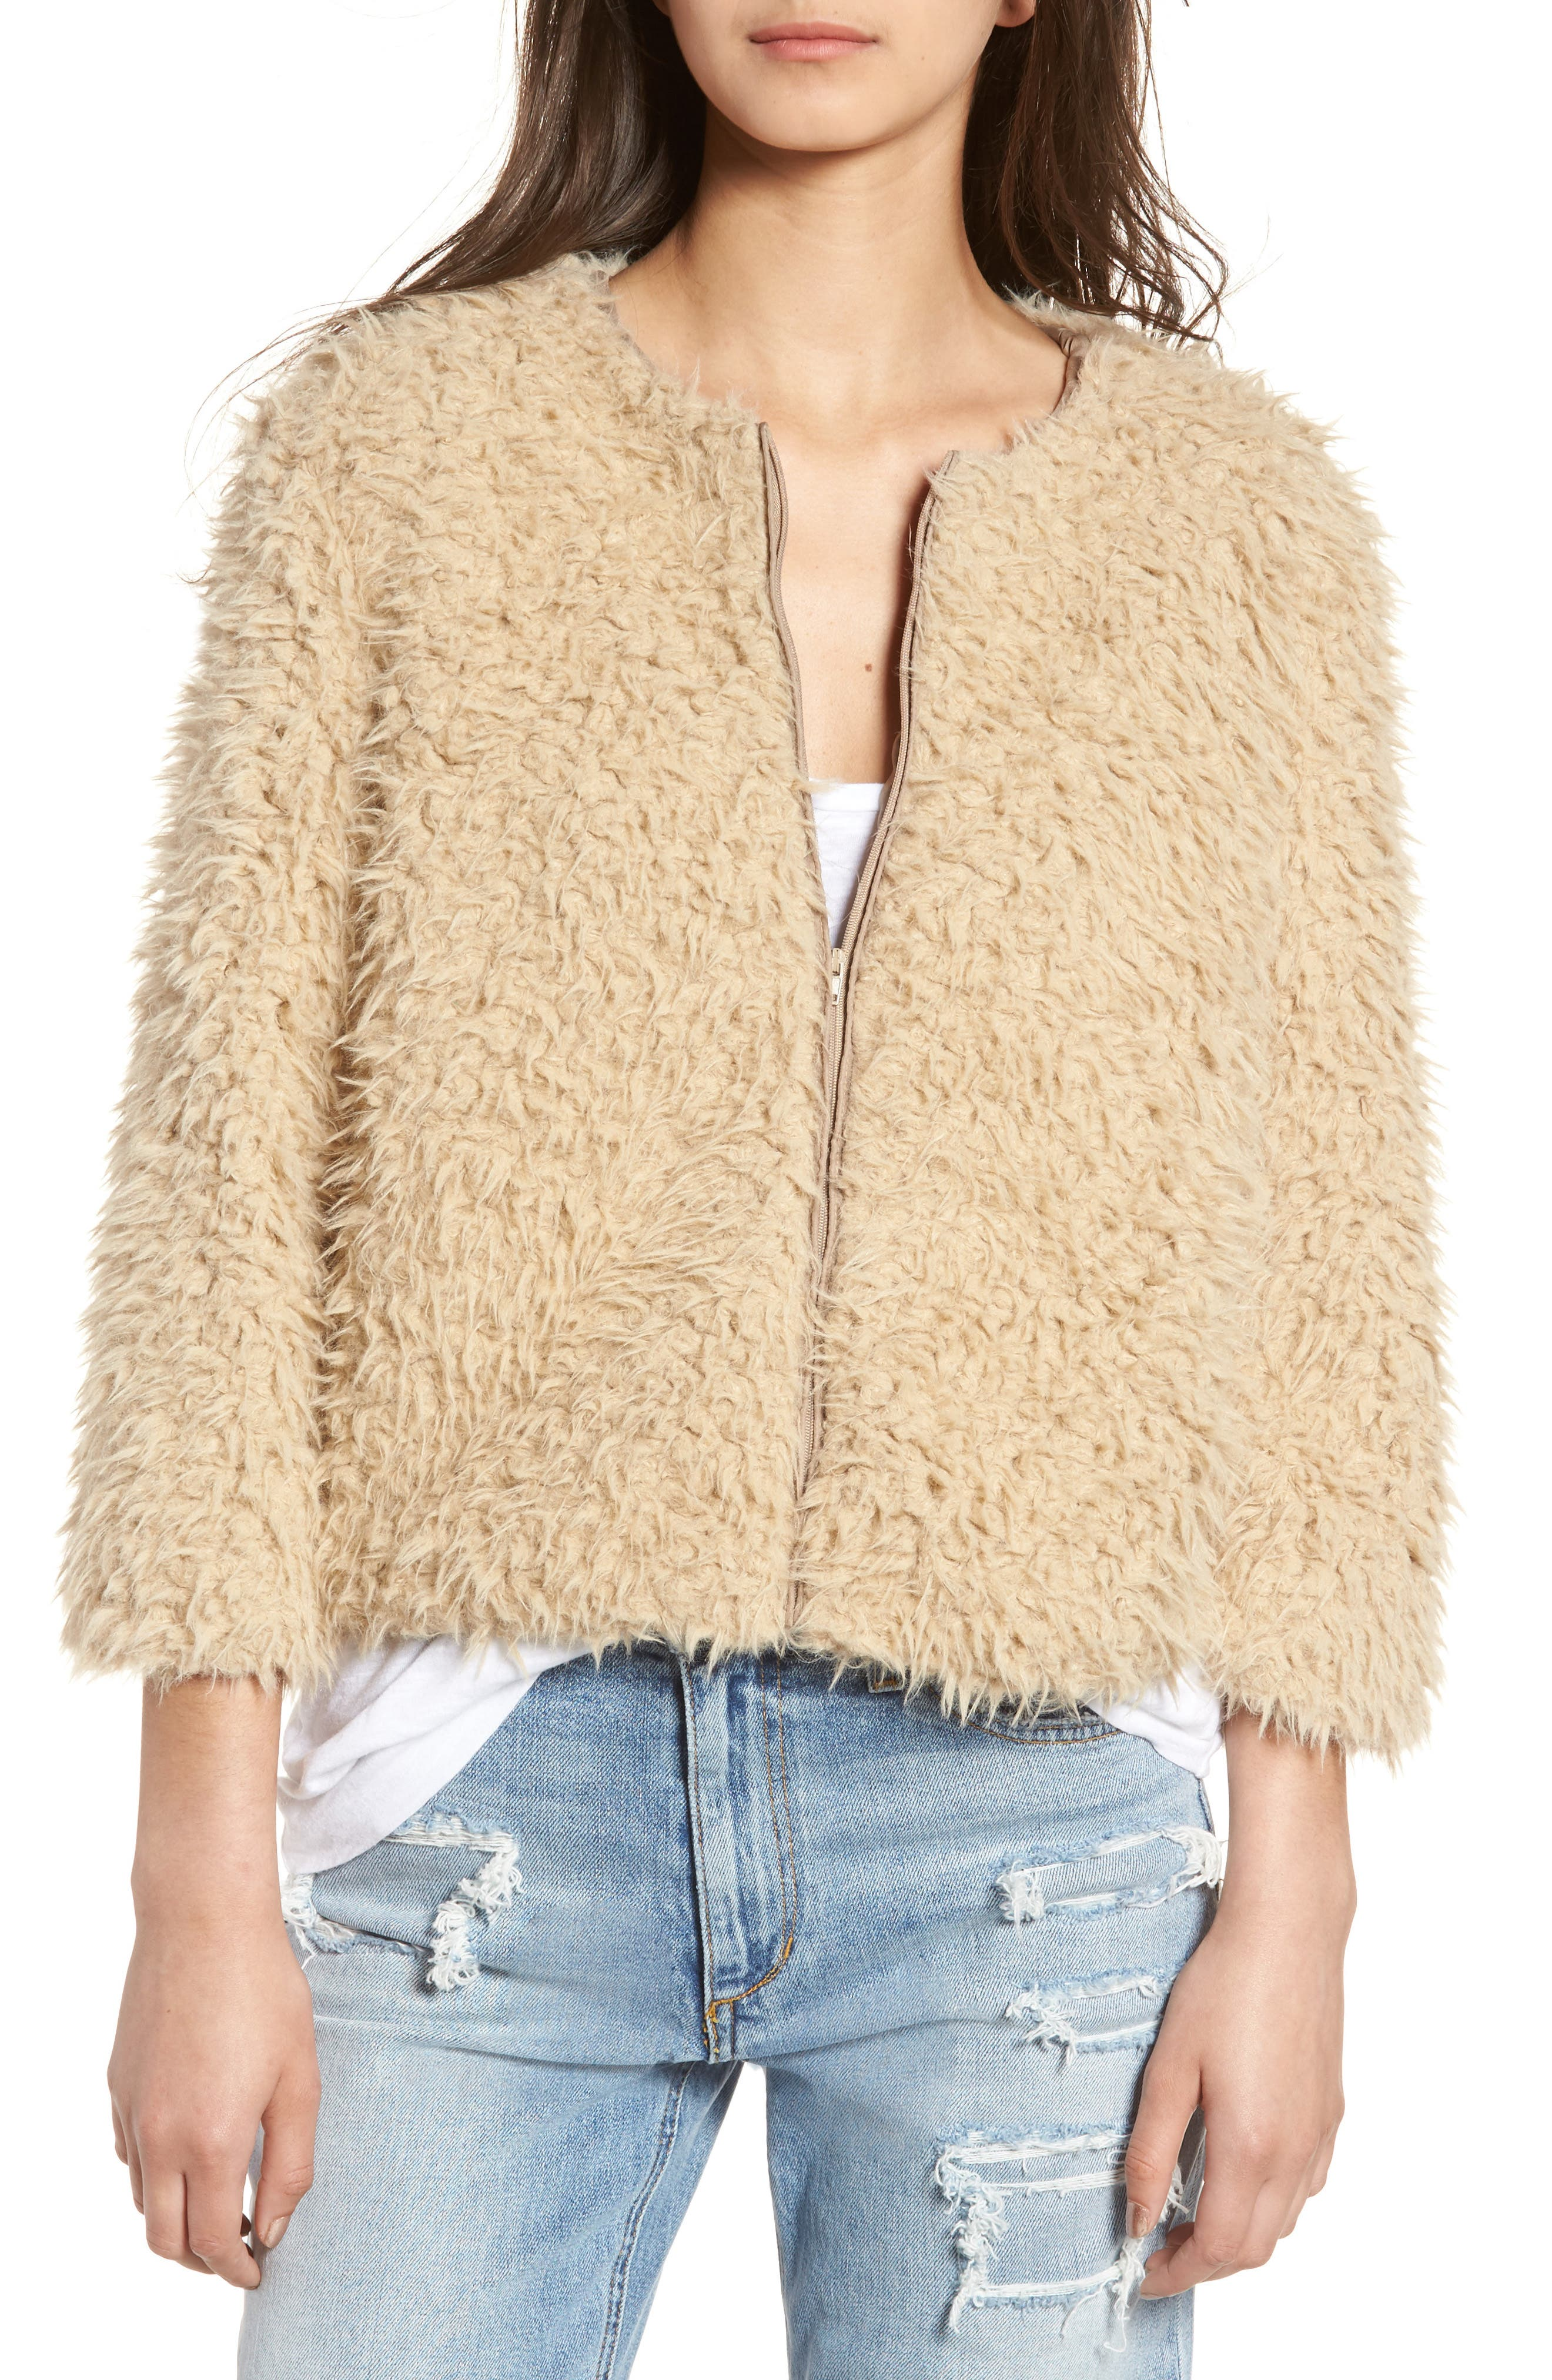 Macy Faux Fur Jacket,                             Alternate thumbnail 4, color,                             251